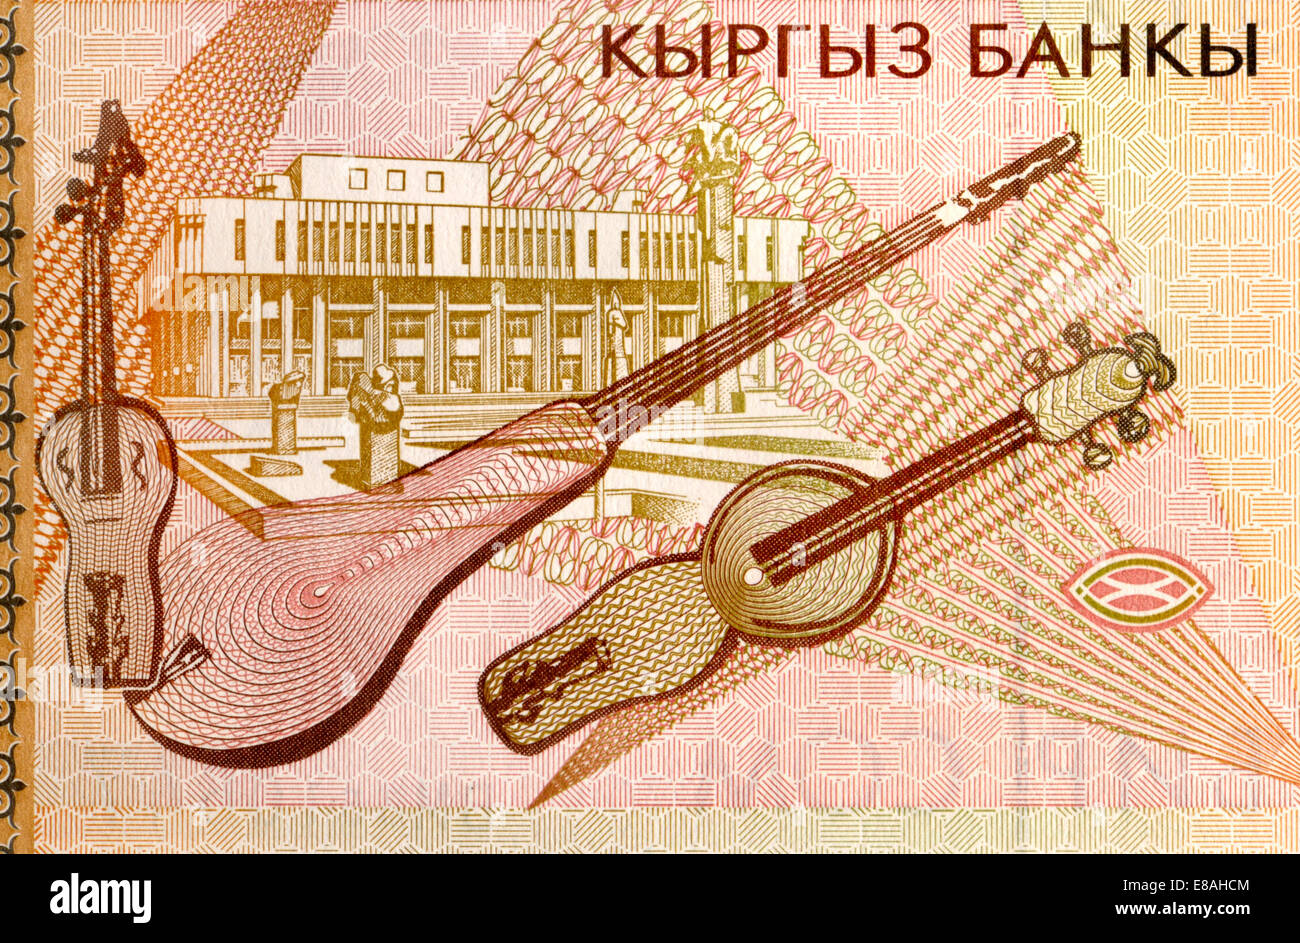 Detail from a Kyrgyzstan 1 Som banknote showing Kyrgyzs State Philharmonic Hall and musical instruments: Kobyz (left) - Stock Image